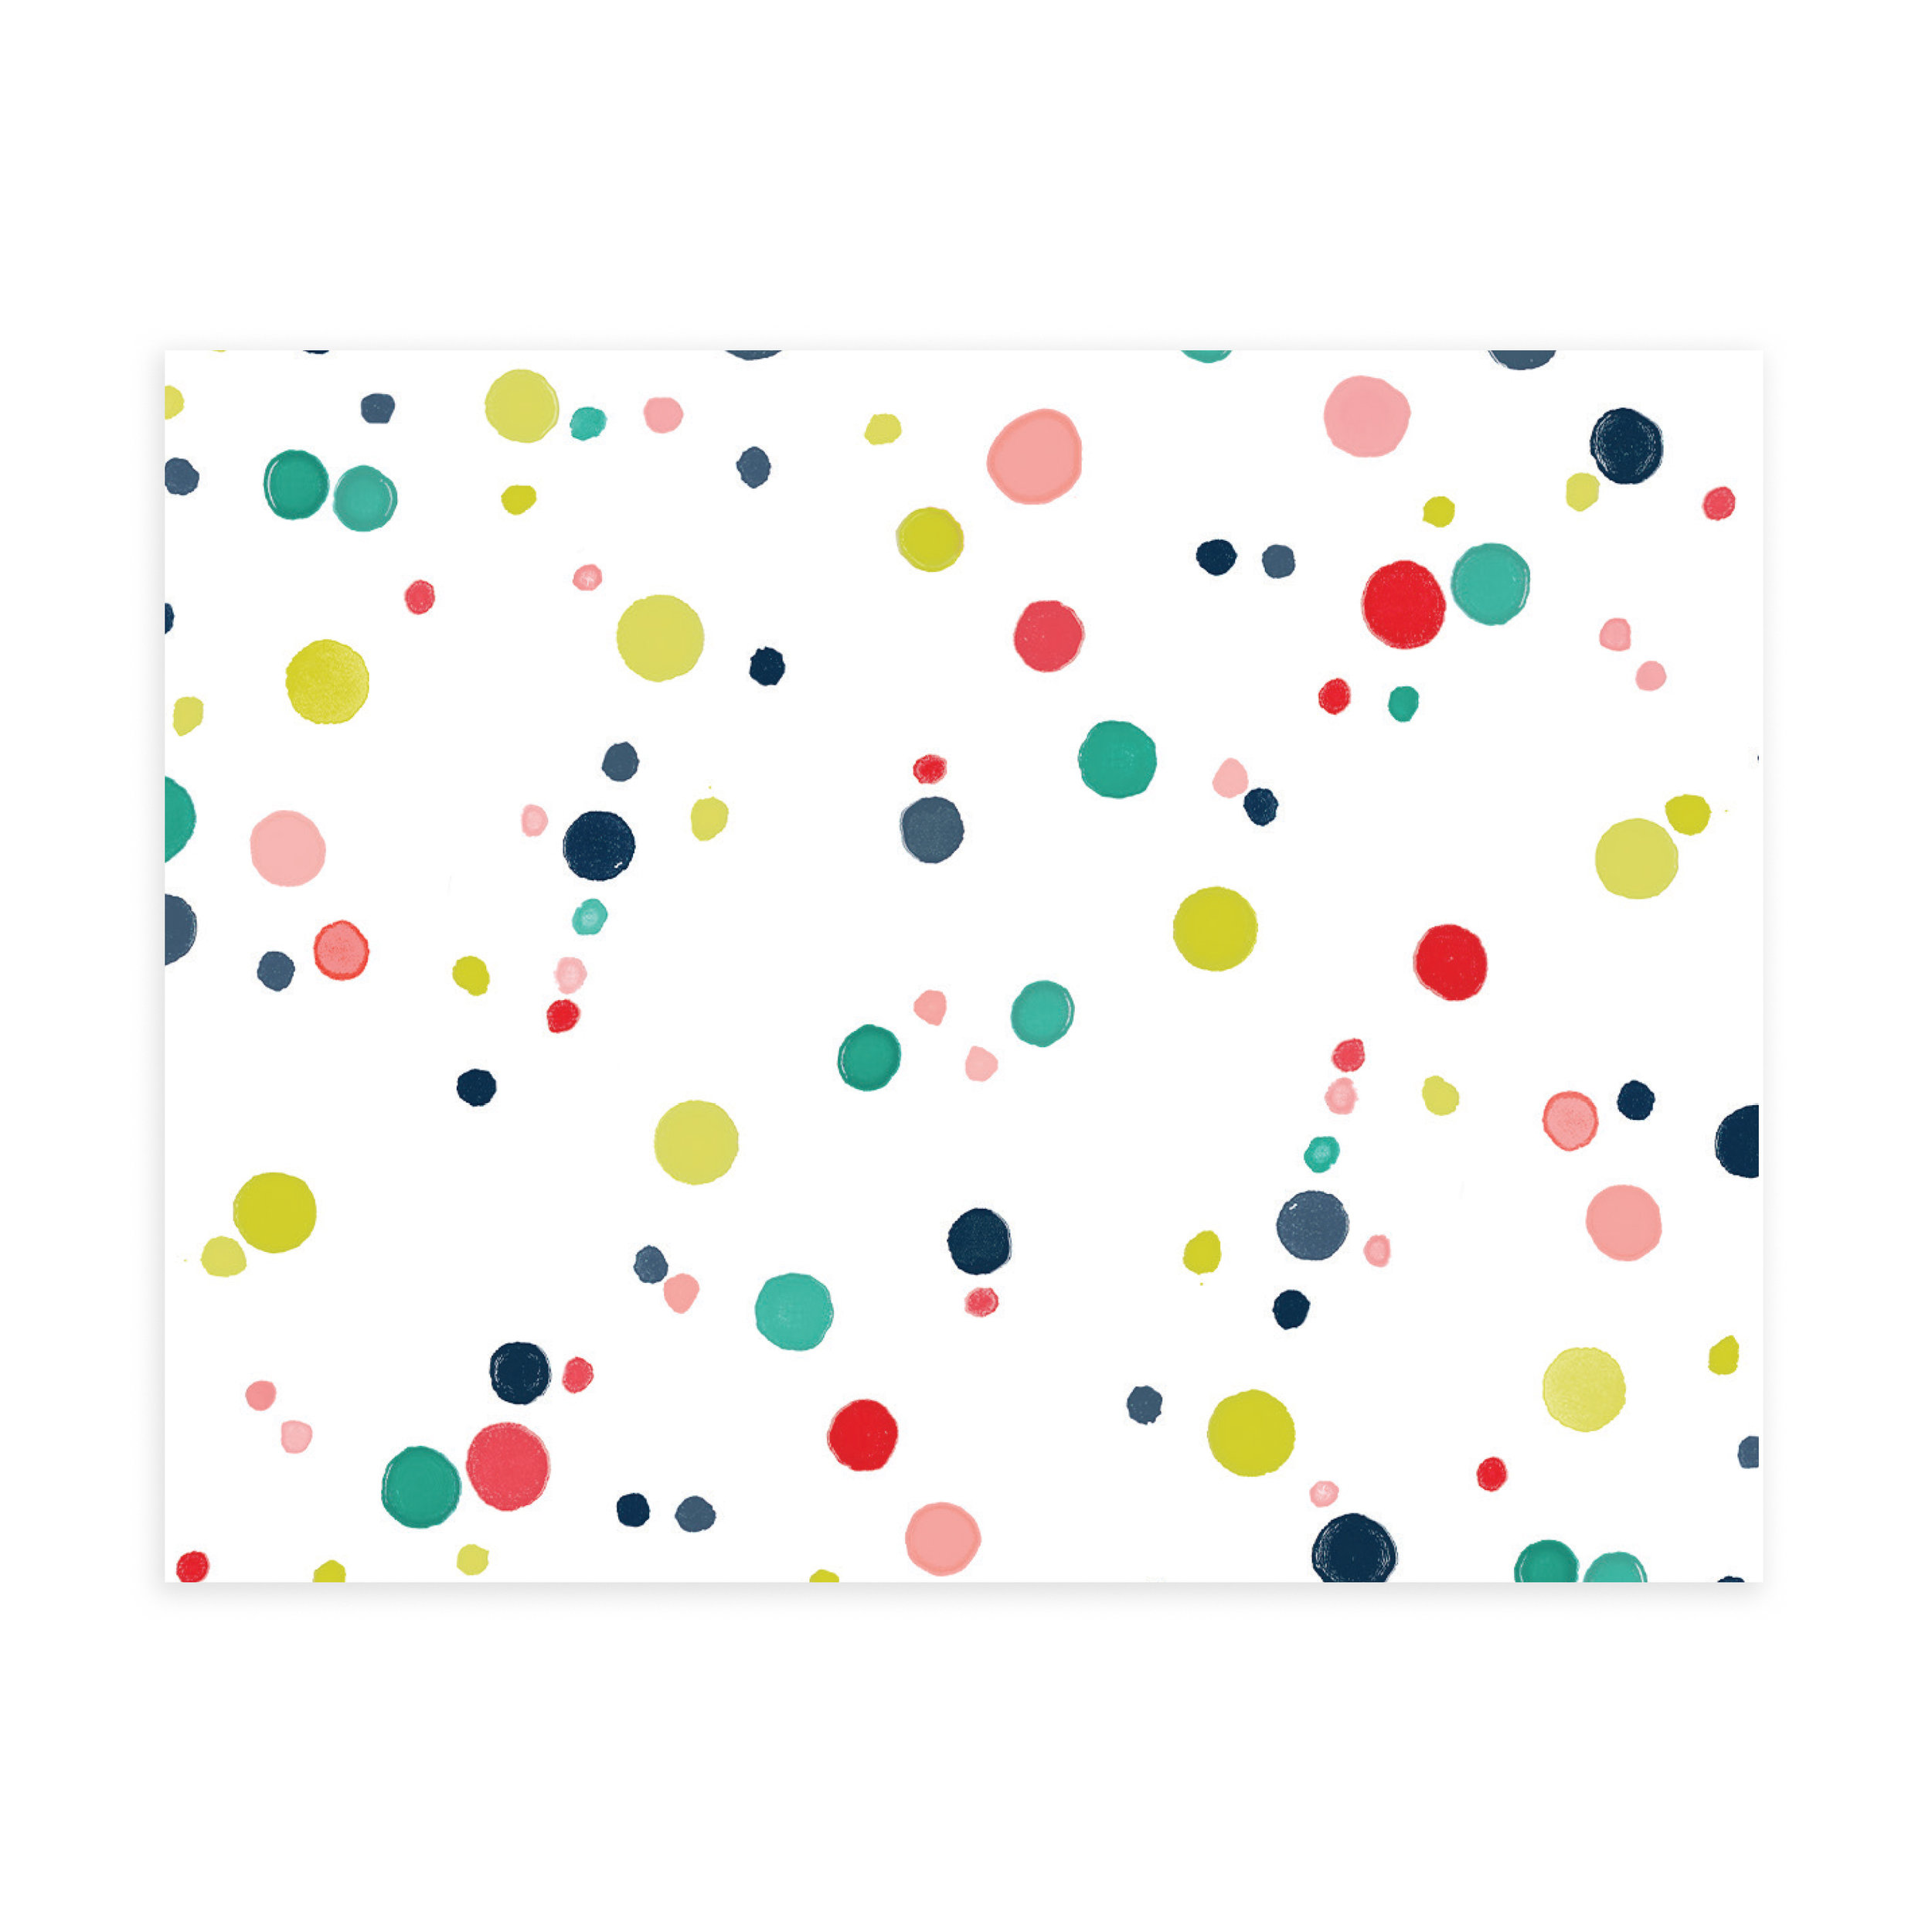 NCP_Graphic_Dots_A2.jpg